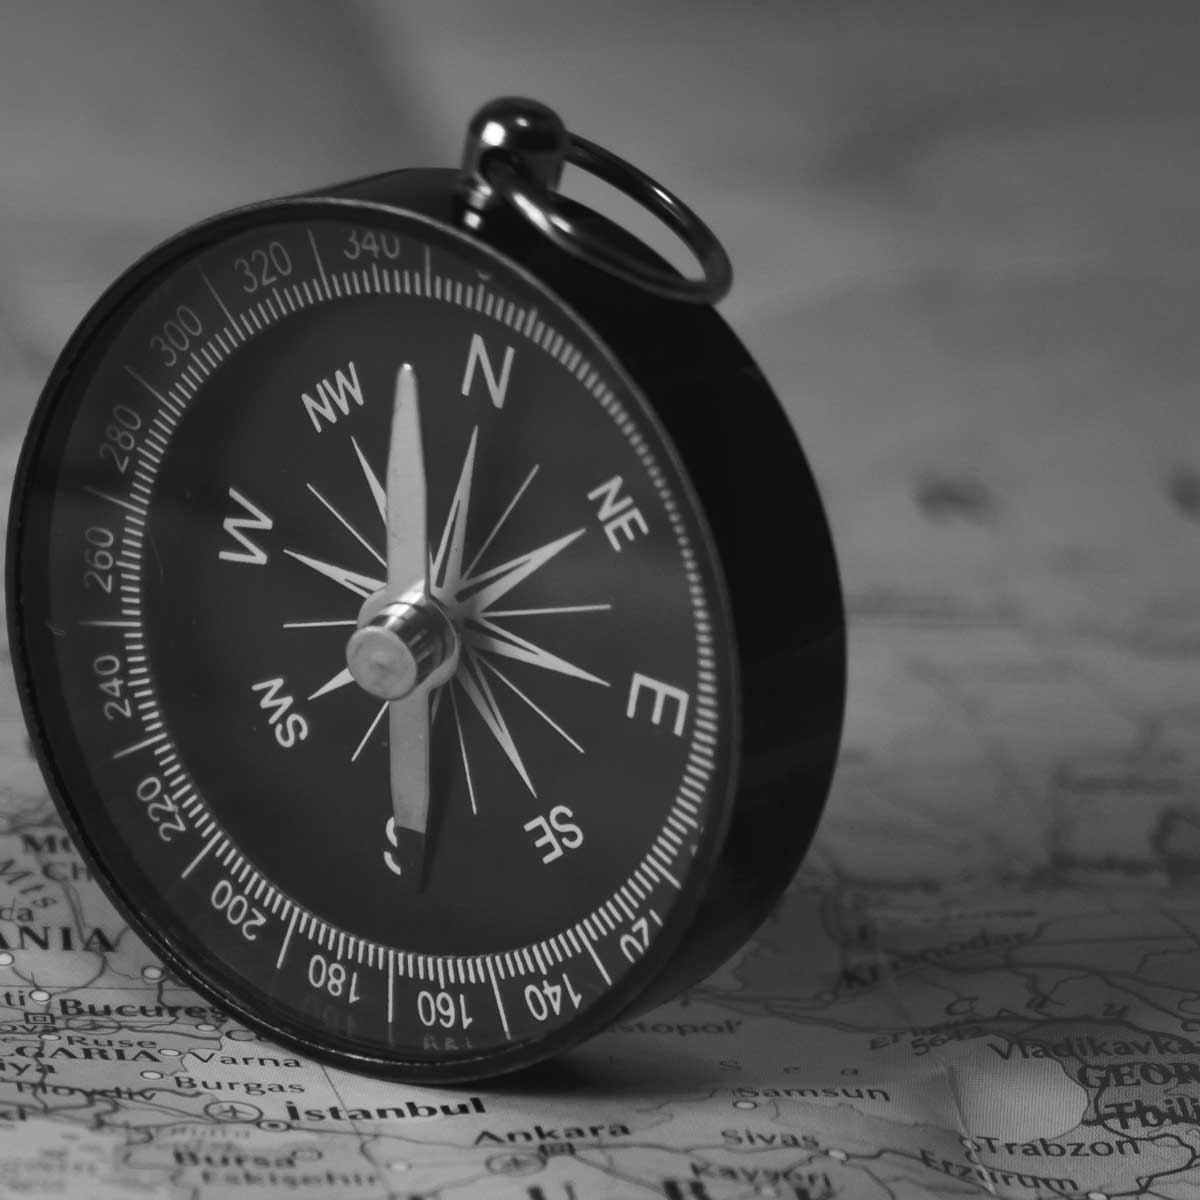 compass on a black and white tourist map. Focus on the compass needle